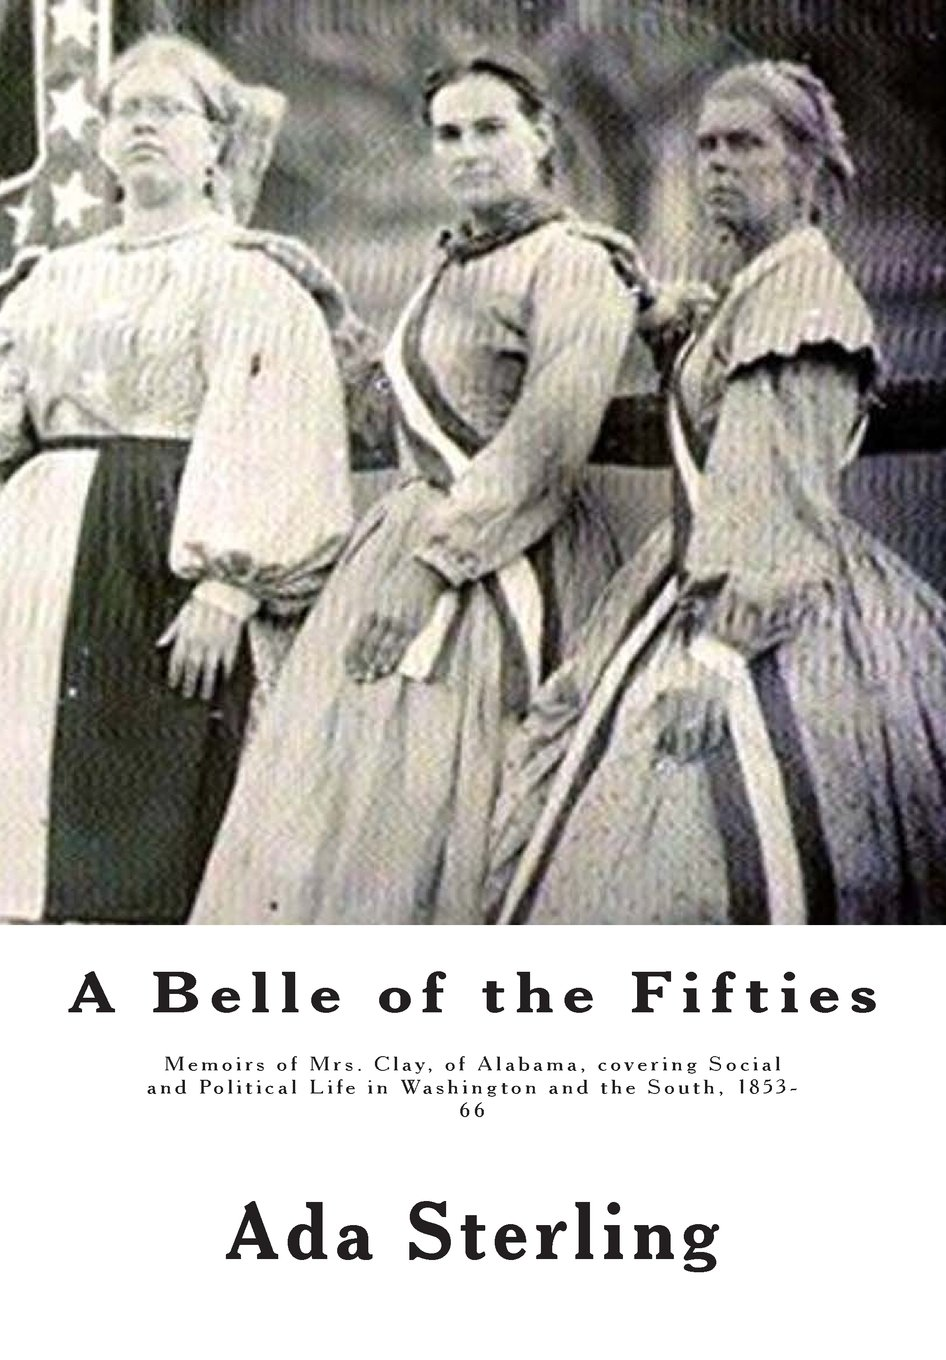 A Belle of the Fifties: Memoirs of Mrs. Clay, of Alabama, covering Social and Political Life in Washington and the South, 1853- 66 ebook